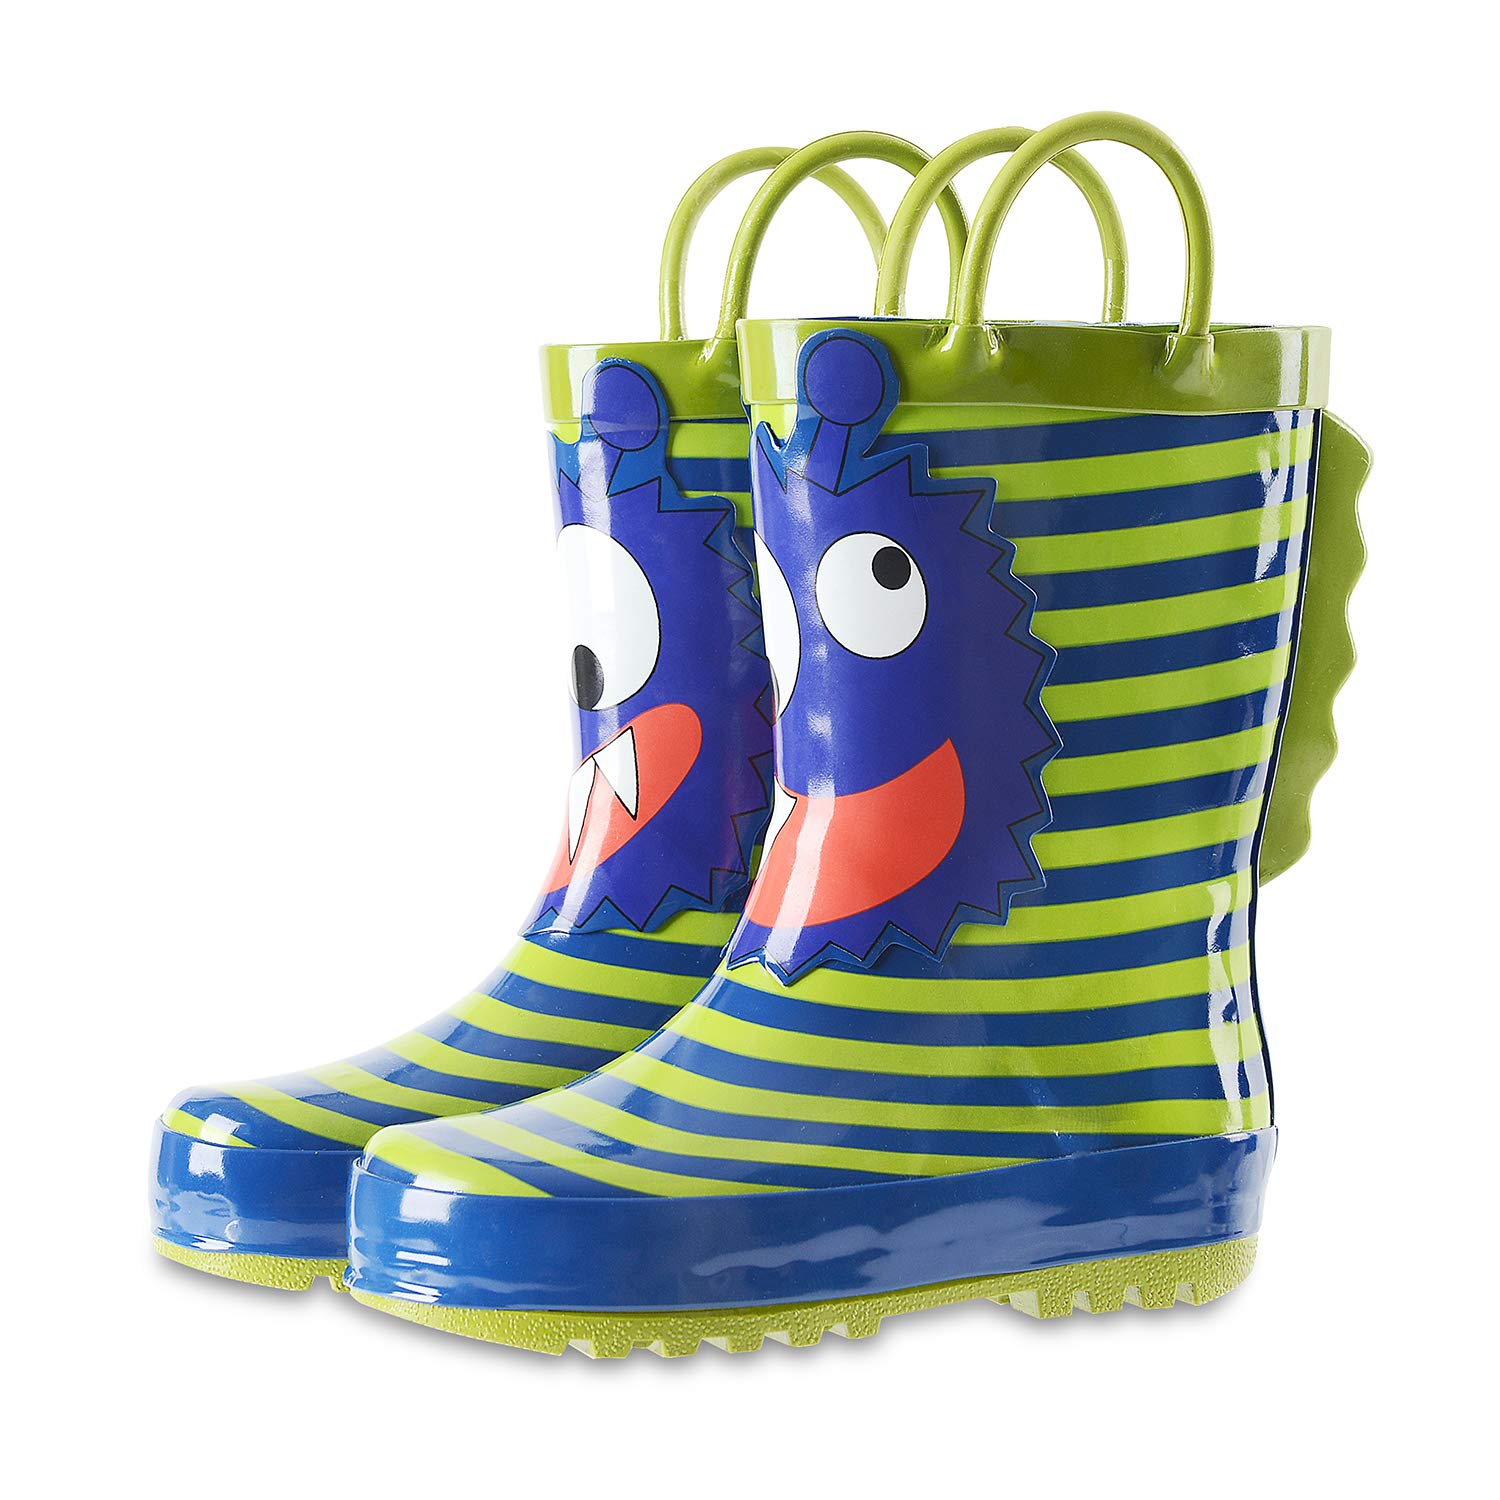 Waterproof Printed Rubber Rainboots with Easy-On Handles for Toddler//Little Big Kids KushyShoo Kids Boy Rain Boots